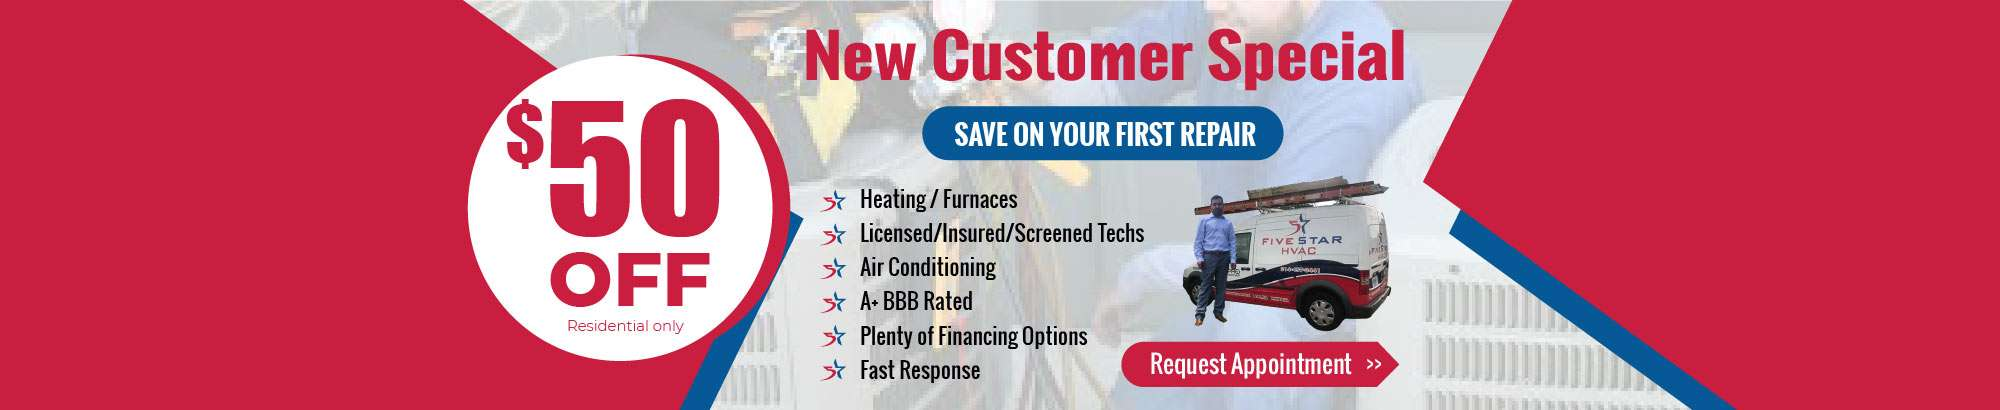 Plano AC & Heating Repair Special